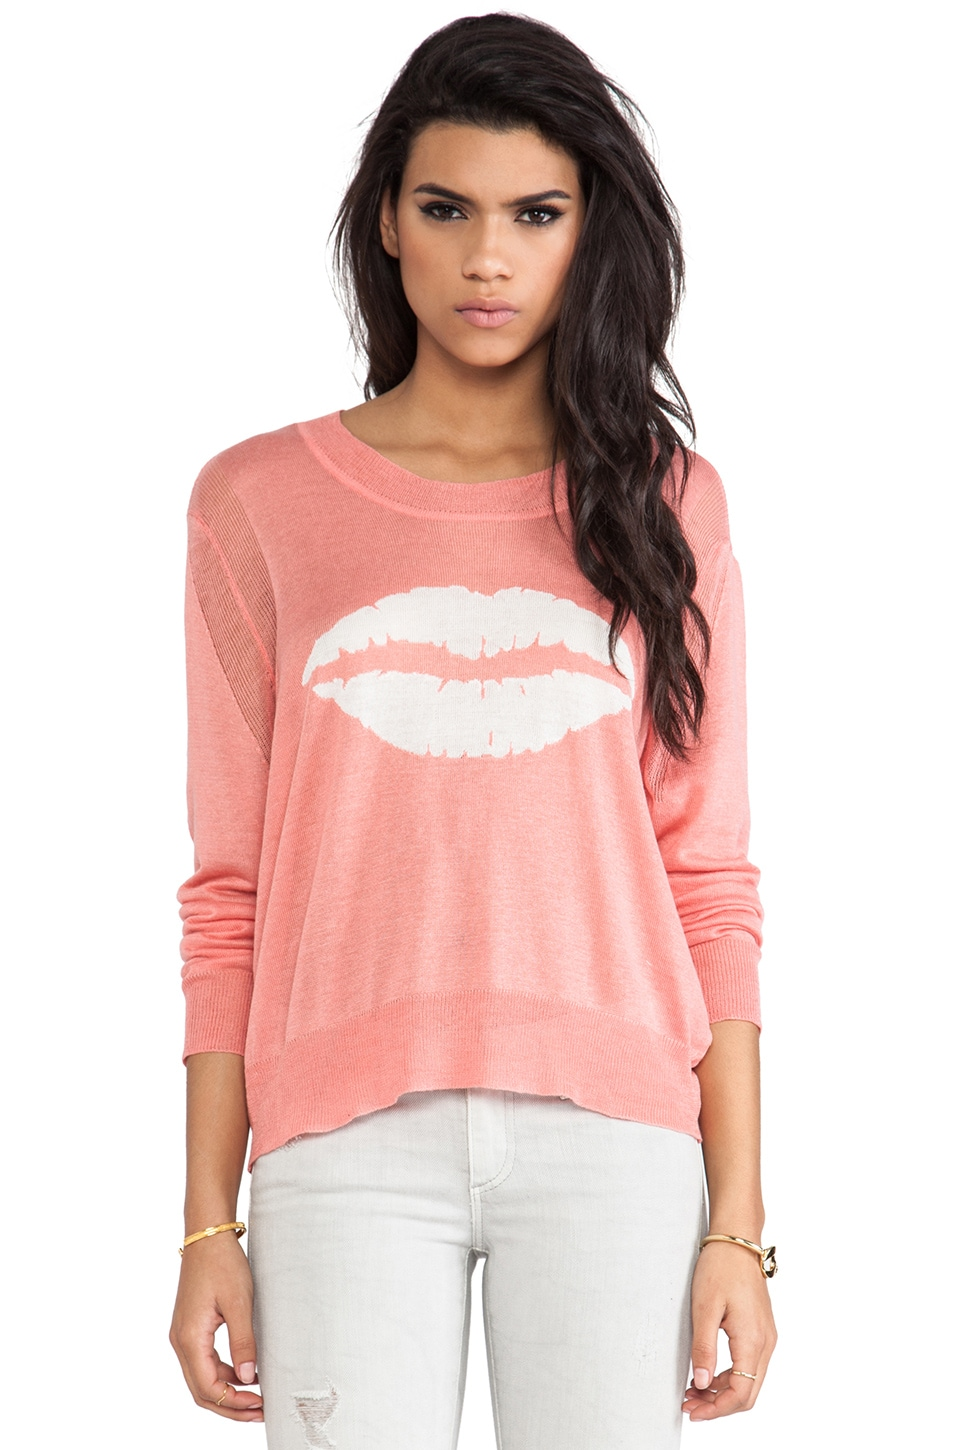 TOWNSEN Lips Sweater in Tulip